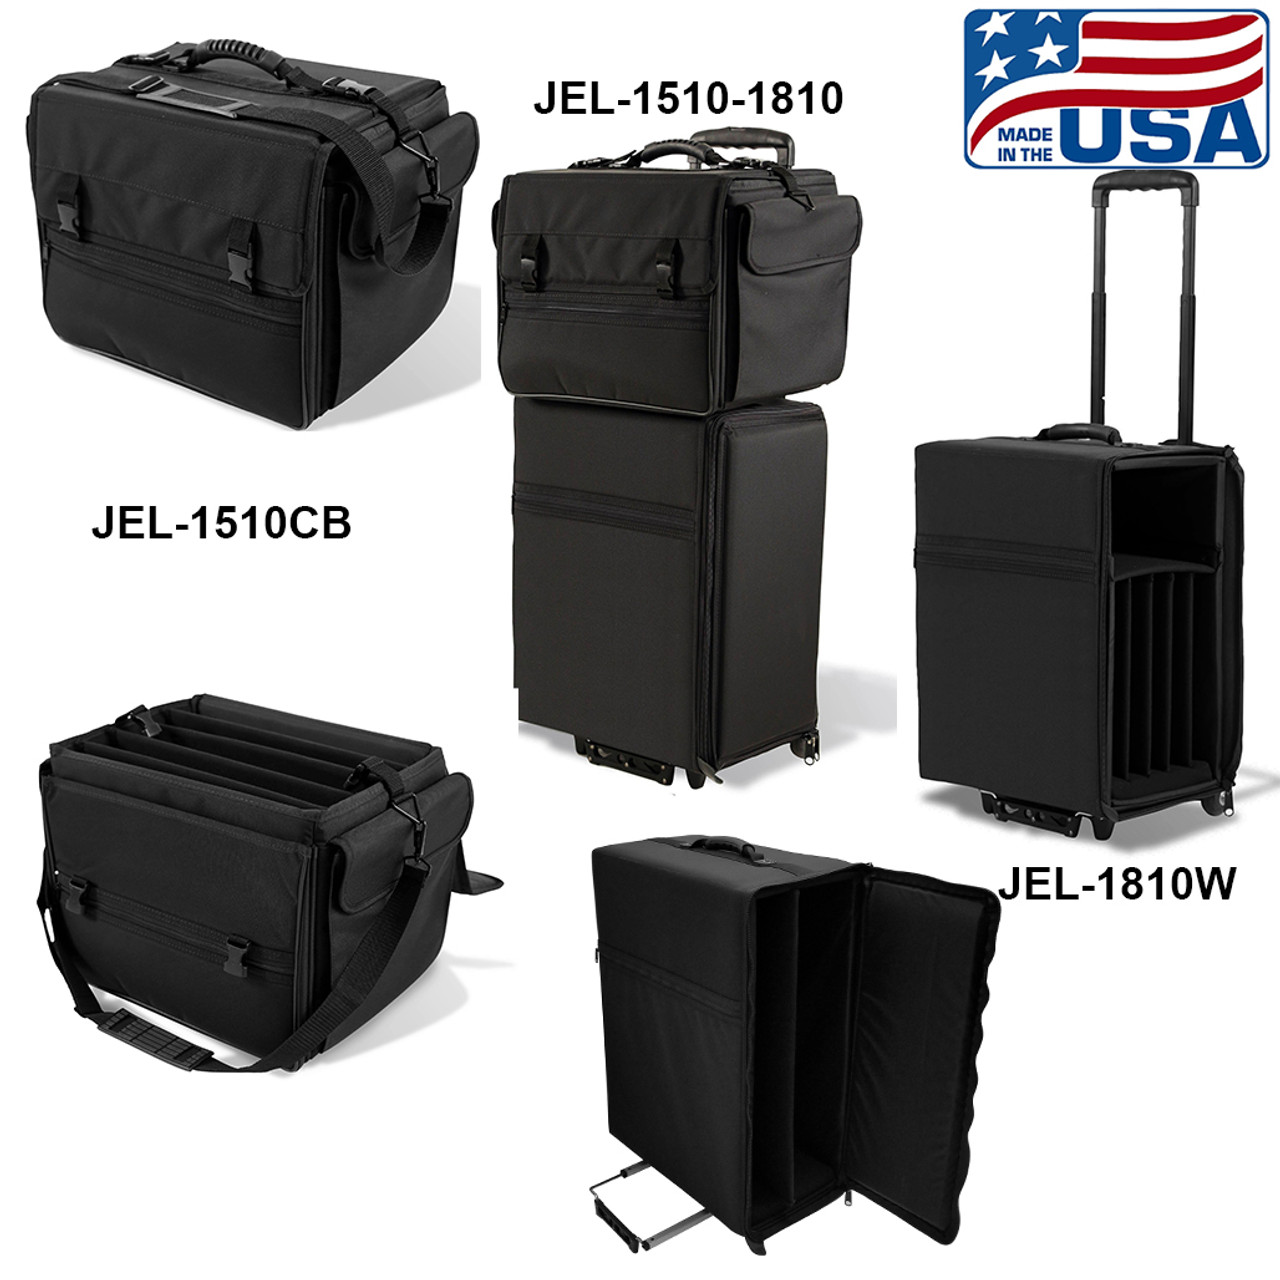 Wheeled and carry bag for multiple laptops and accessories.  Each bag fits up to five laptops